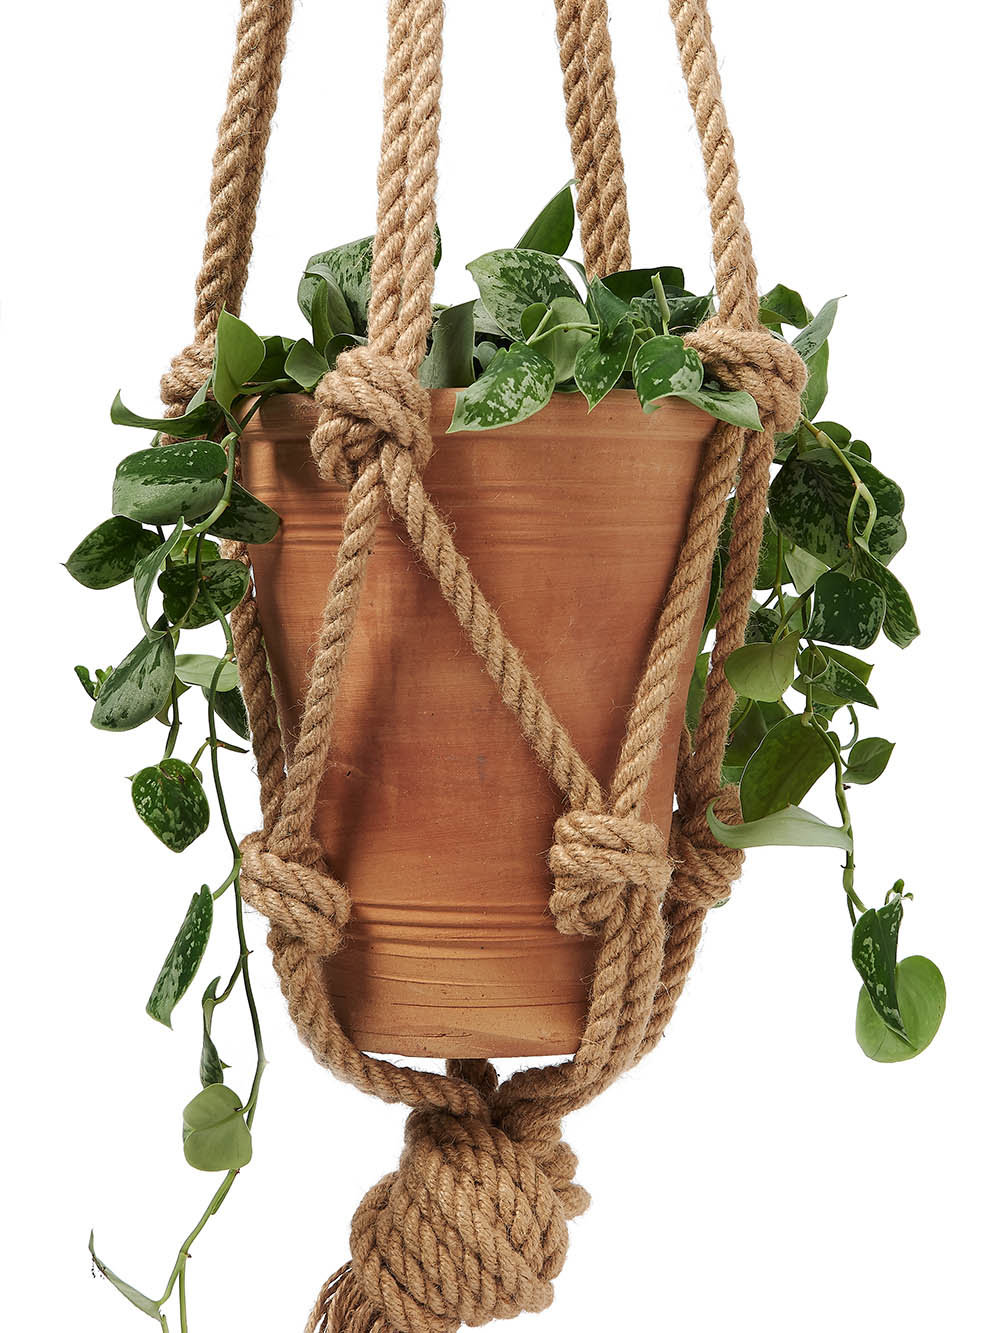 Homeware photography of macrame hanger with pot and plant